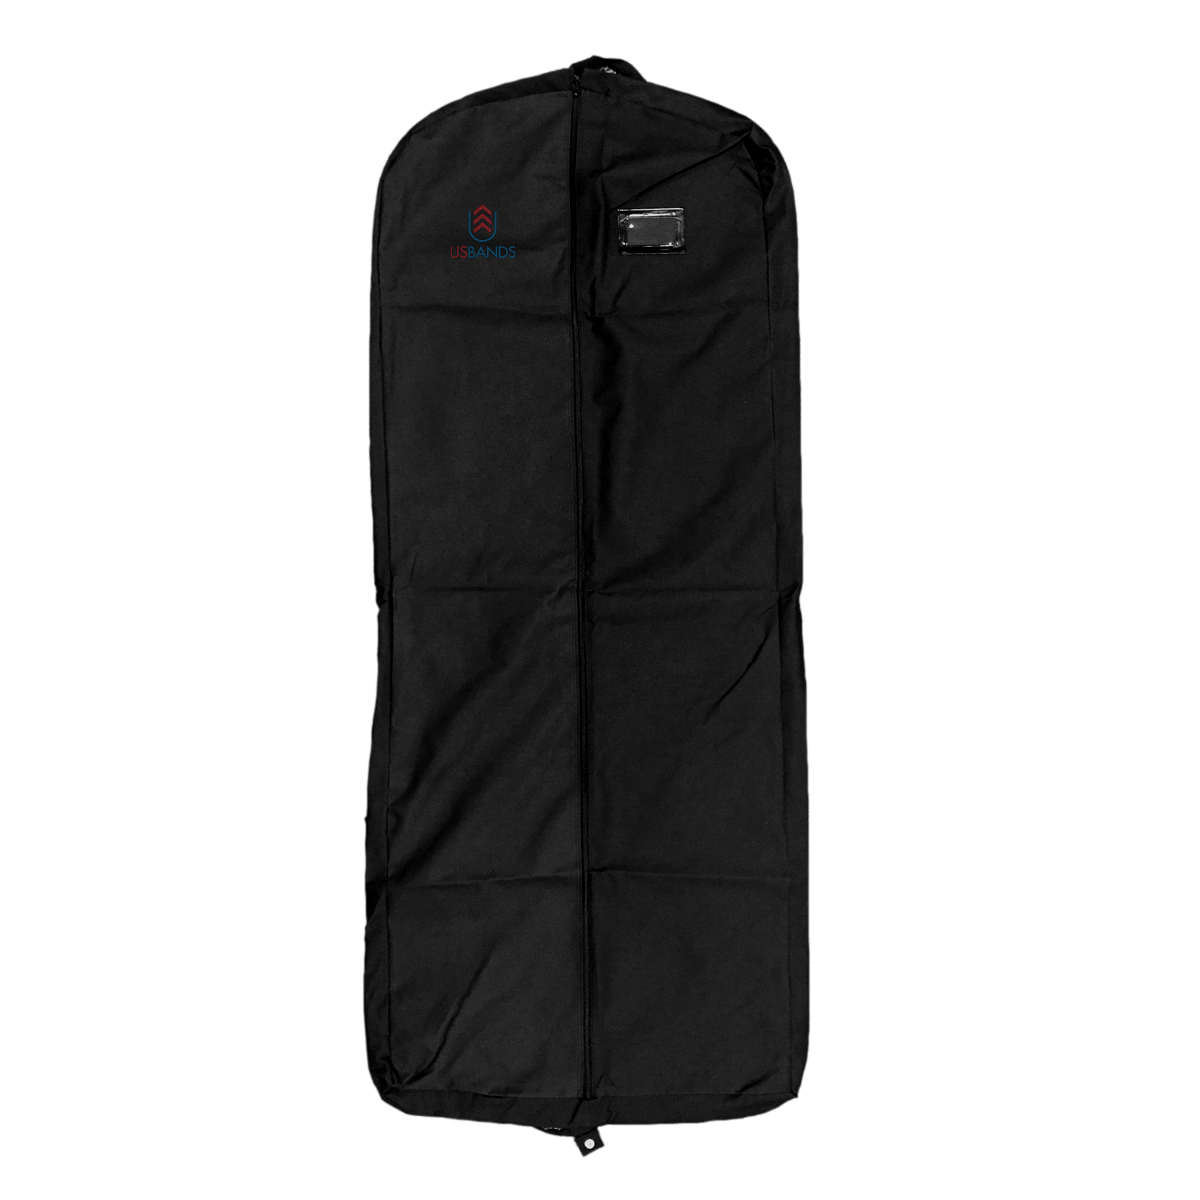 USBands Logo Garment Bag